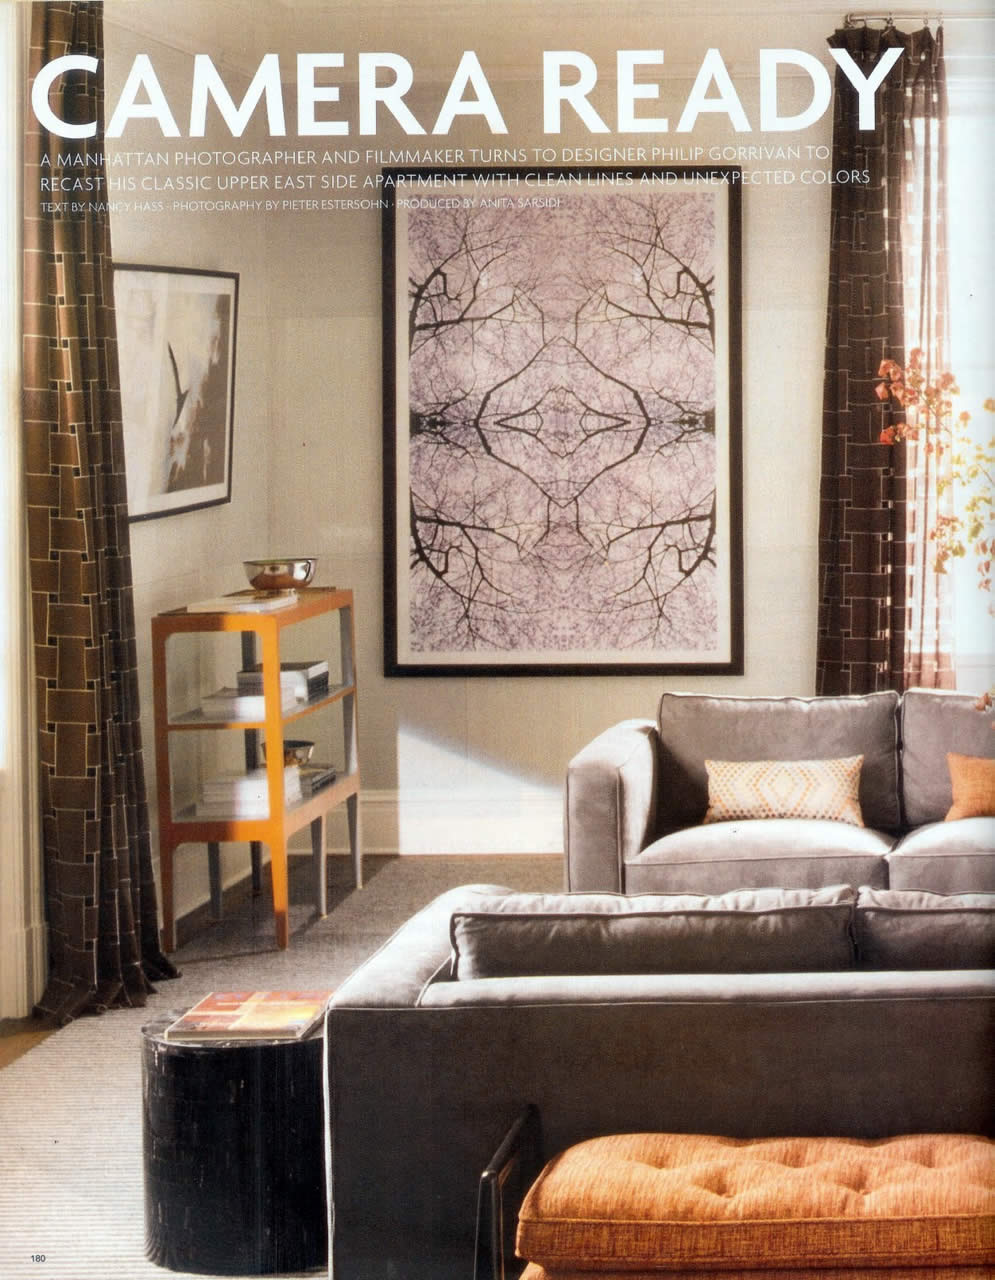 Article_ElleDecor2010_1.jpg